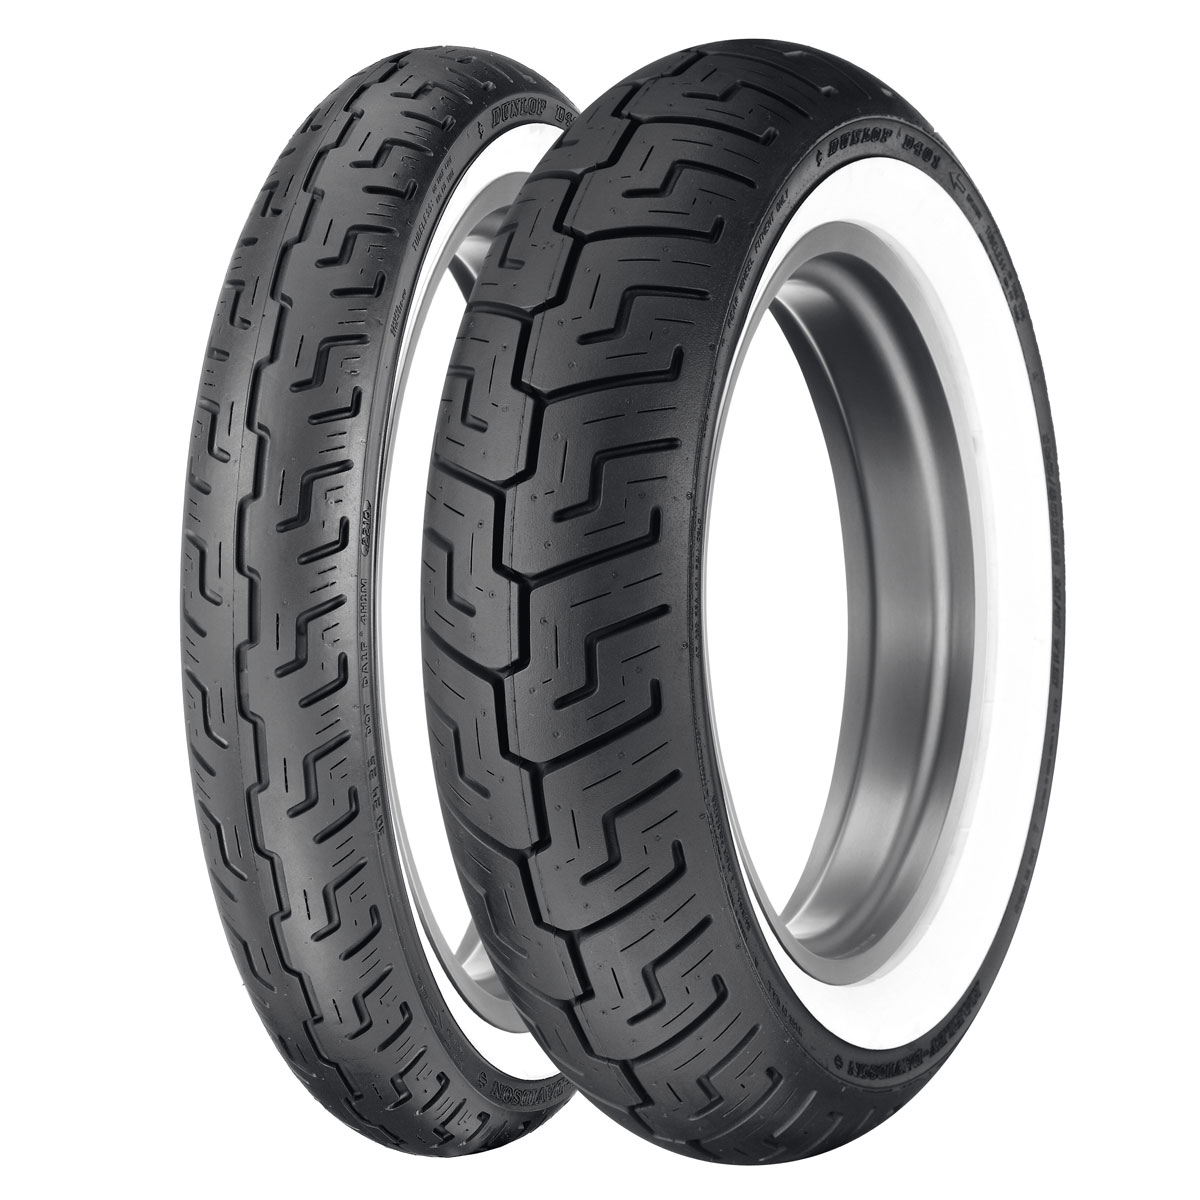 Dunlop D401 100/90-19 Wide Whitewall Front Tire